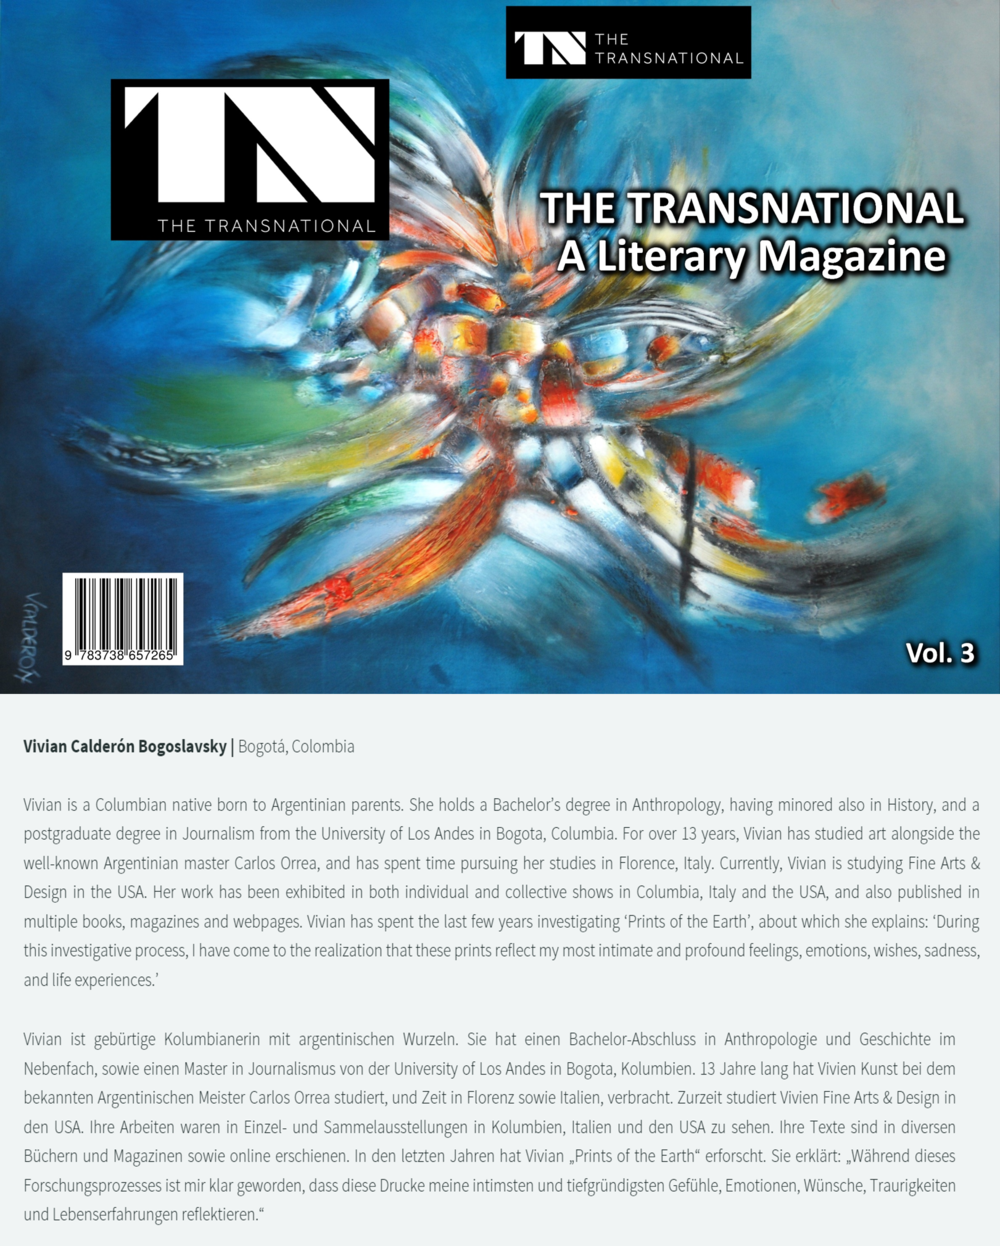 The Transnational A Literary Magazine Vol 3